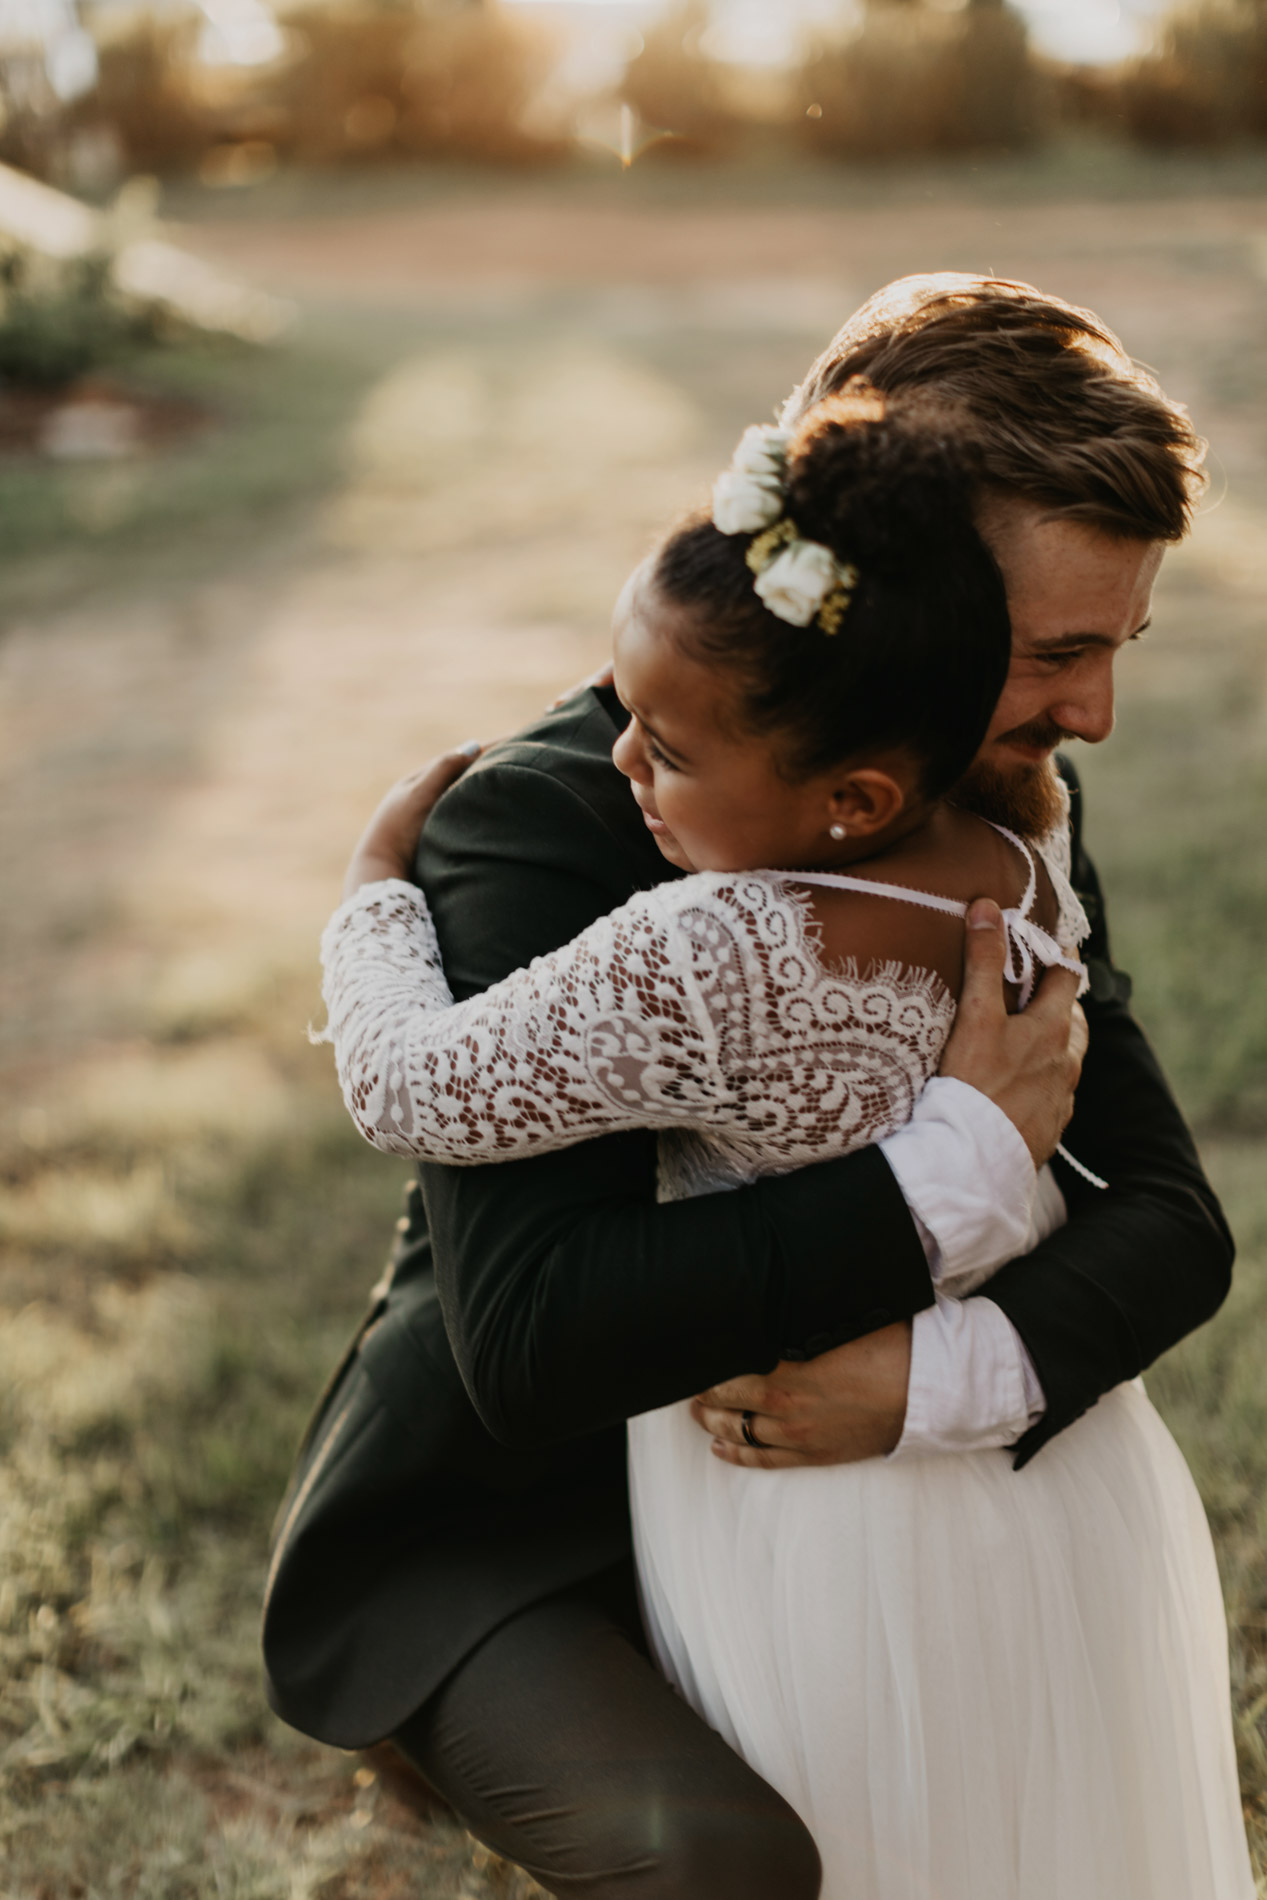 Groom hugging brides little sister after wedding ceremony